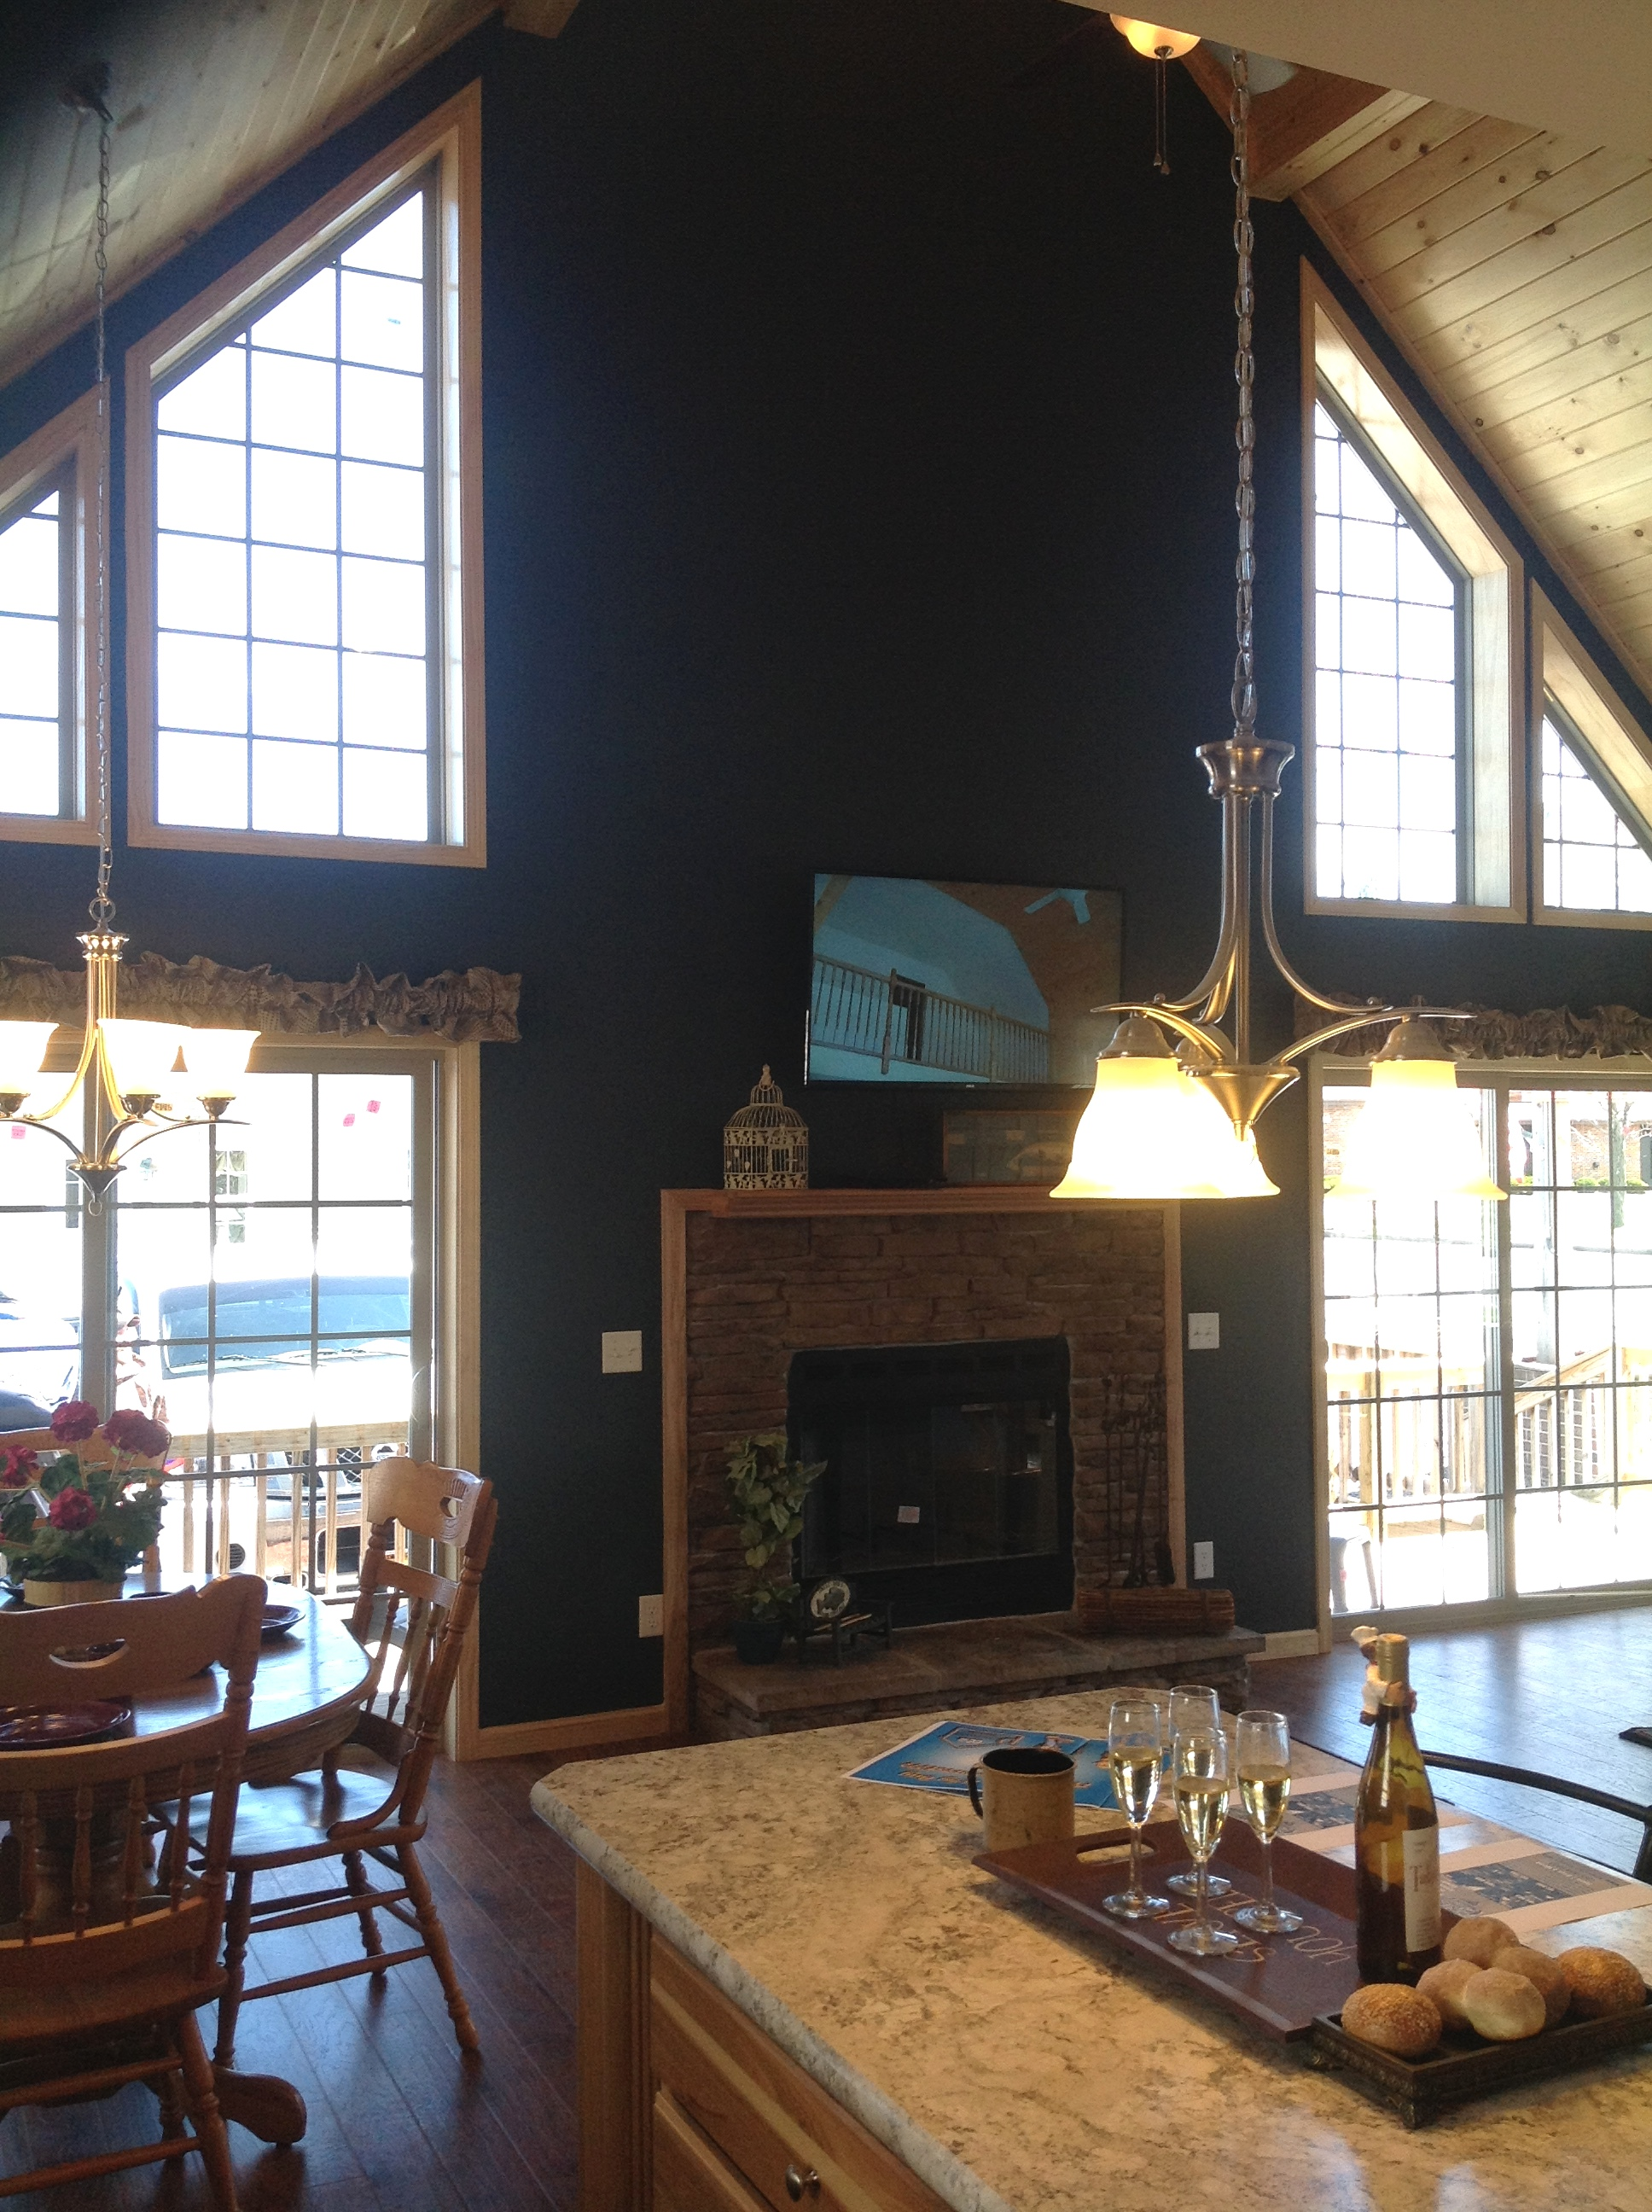 Trapozoid windows, bump out fireplace and sliding glass doors.